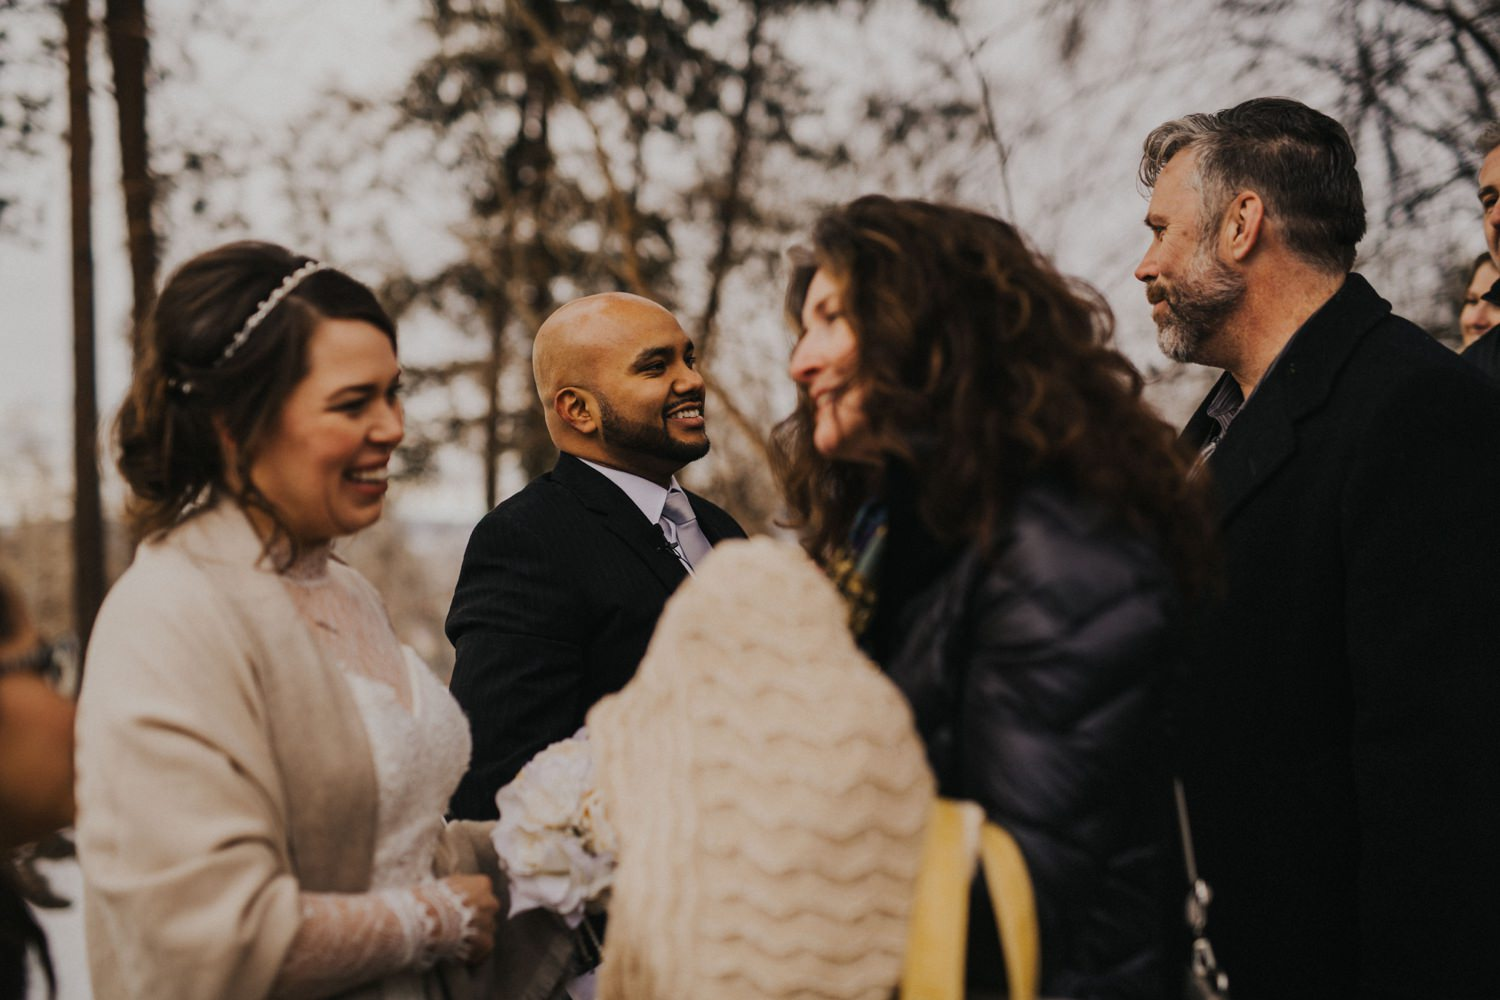 Kelowna Winter Wedding - Joelsview Photography_0091